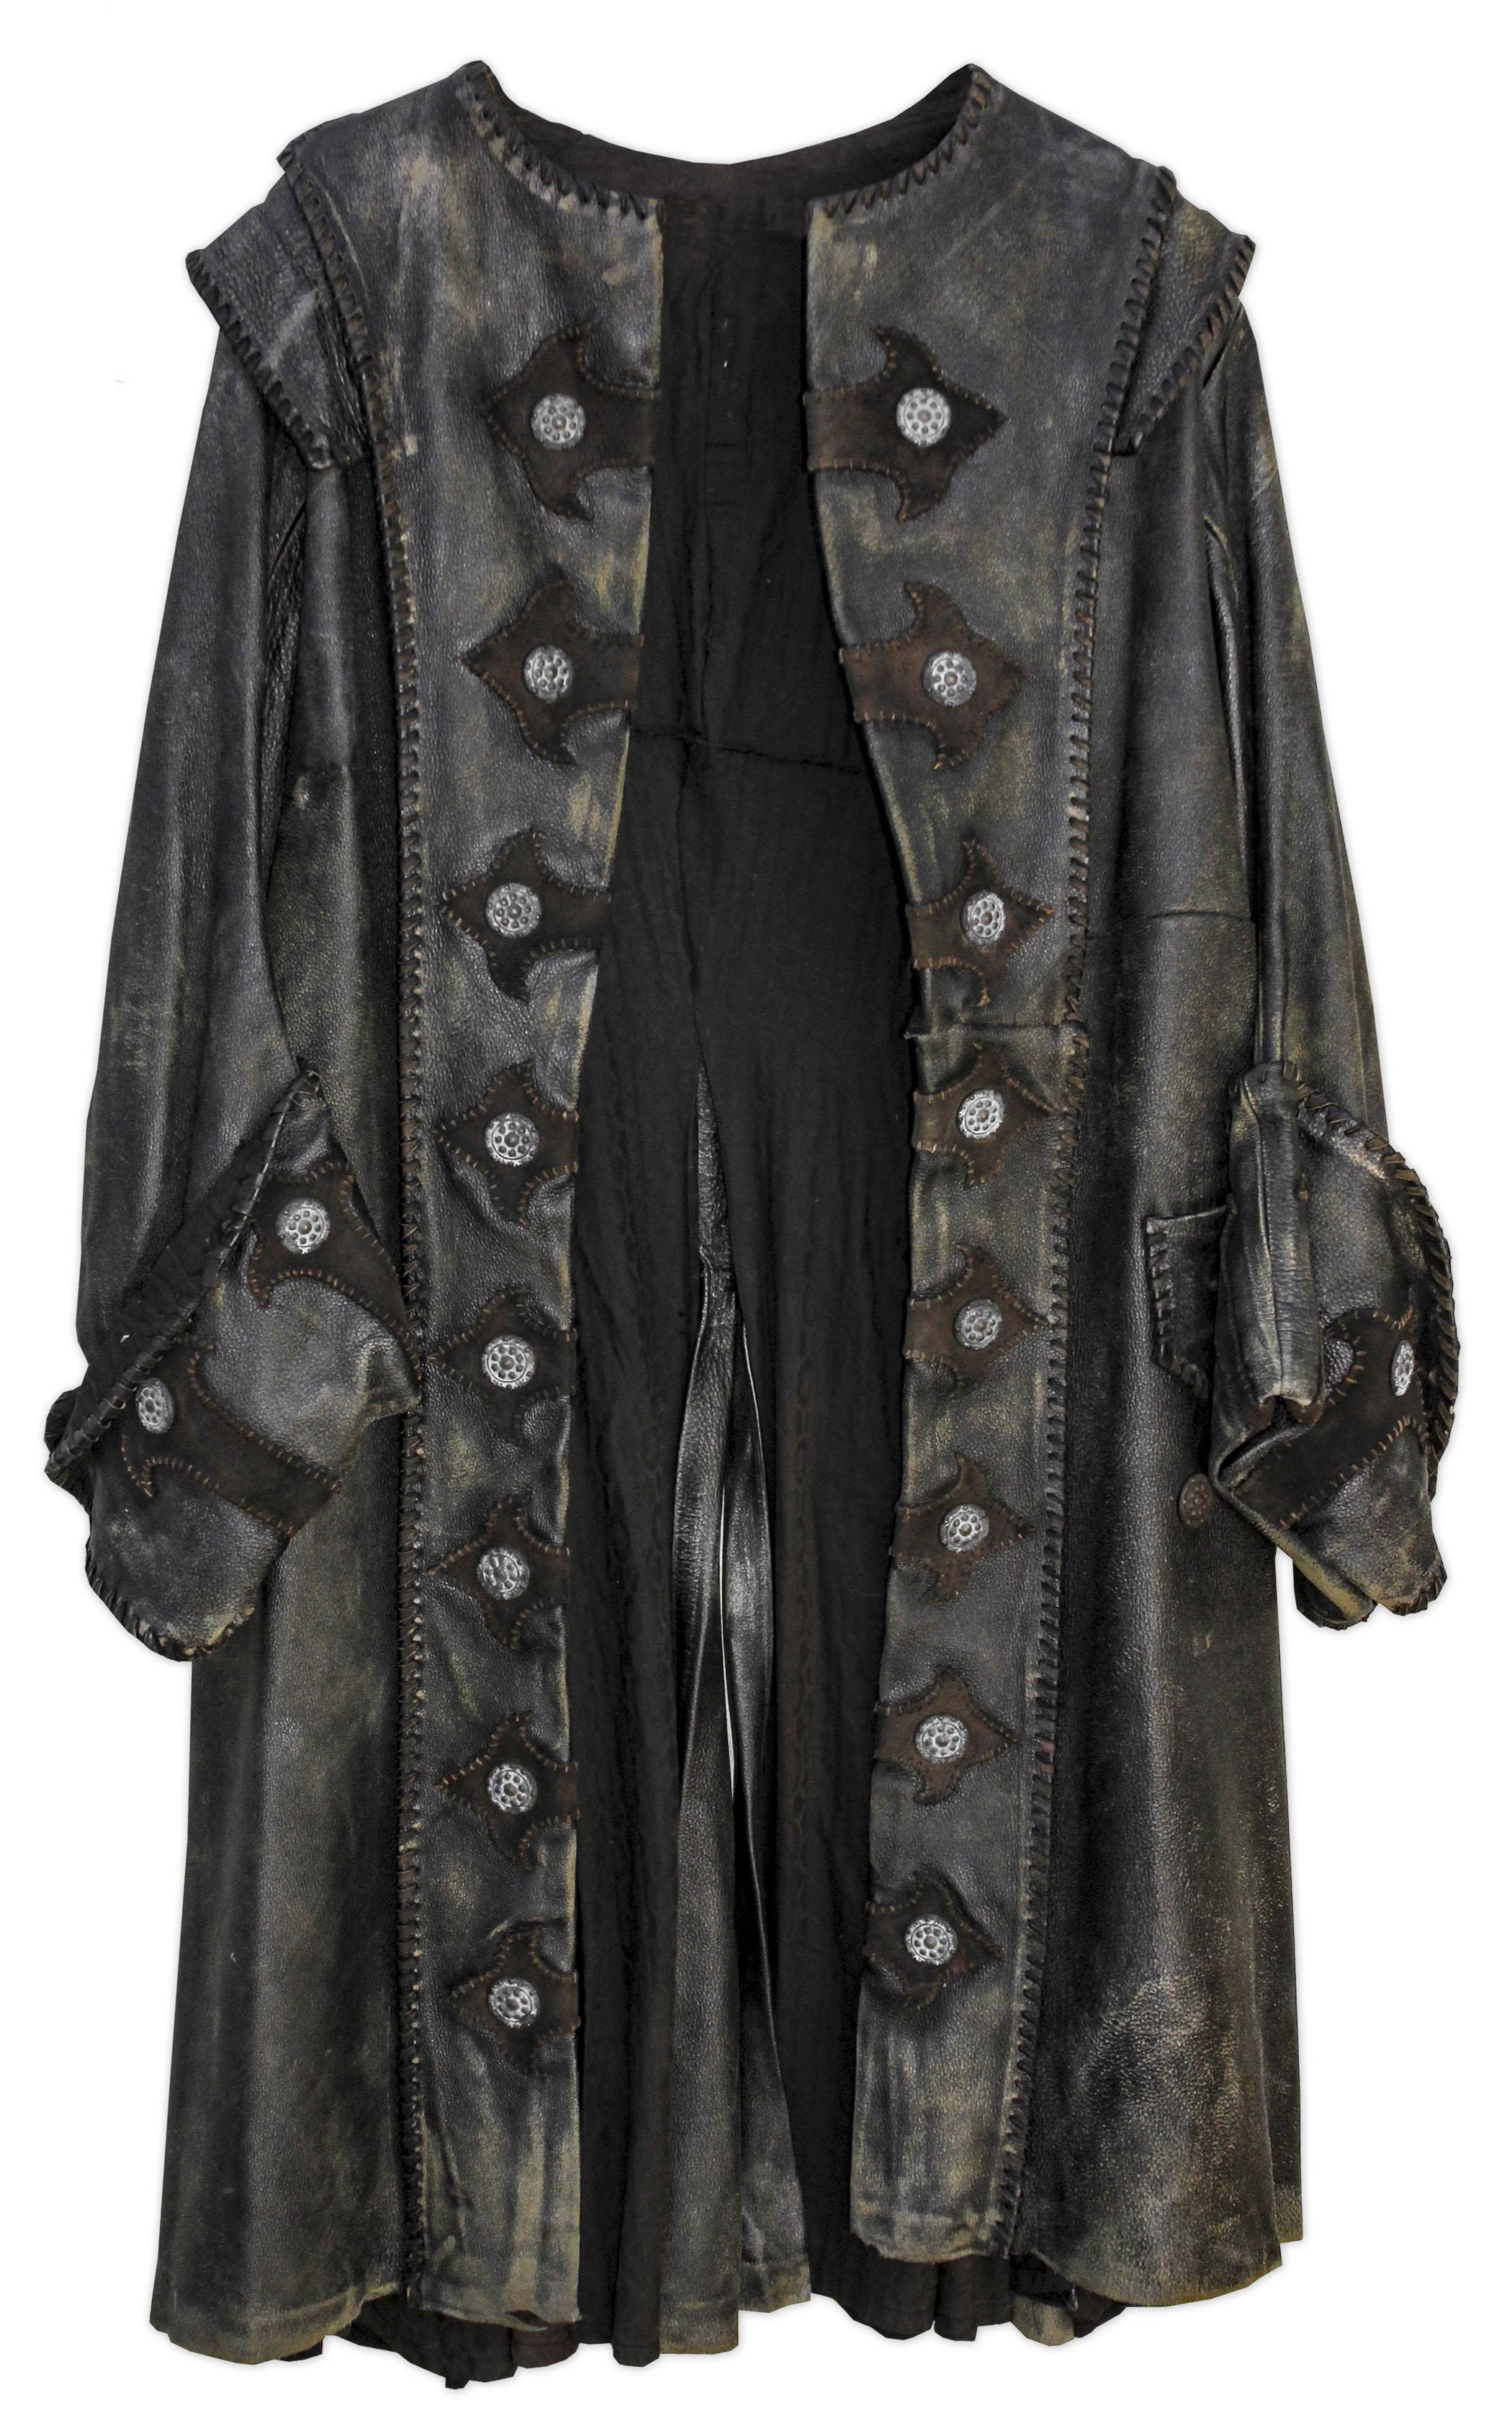 Lot Detail Blackbeards Coat from Pirates of the